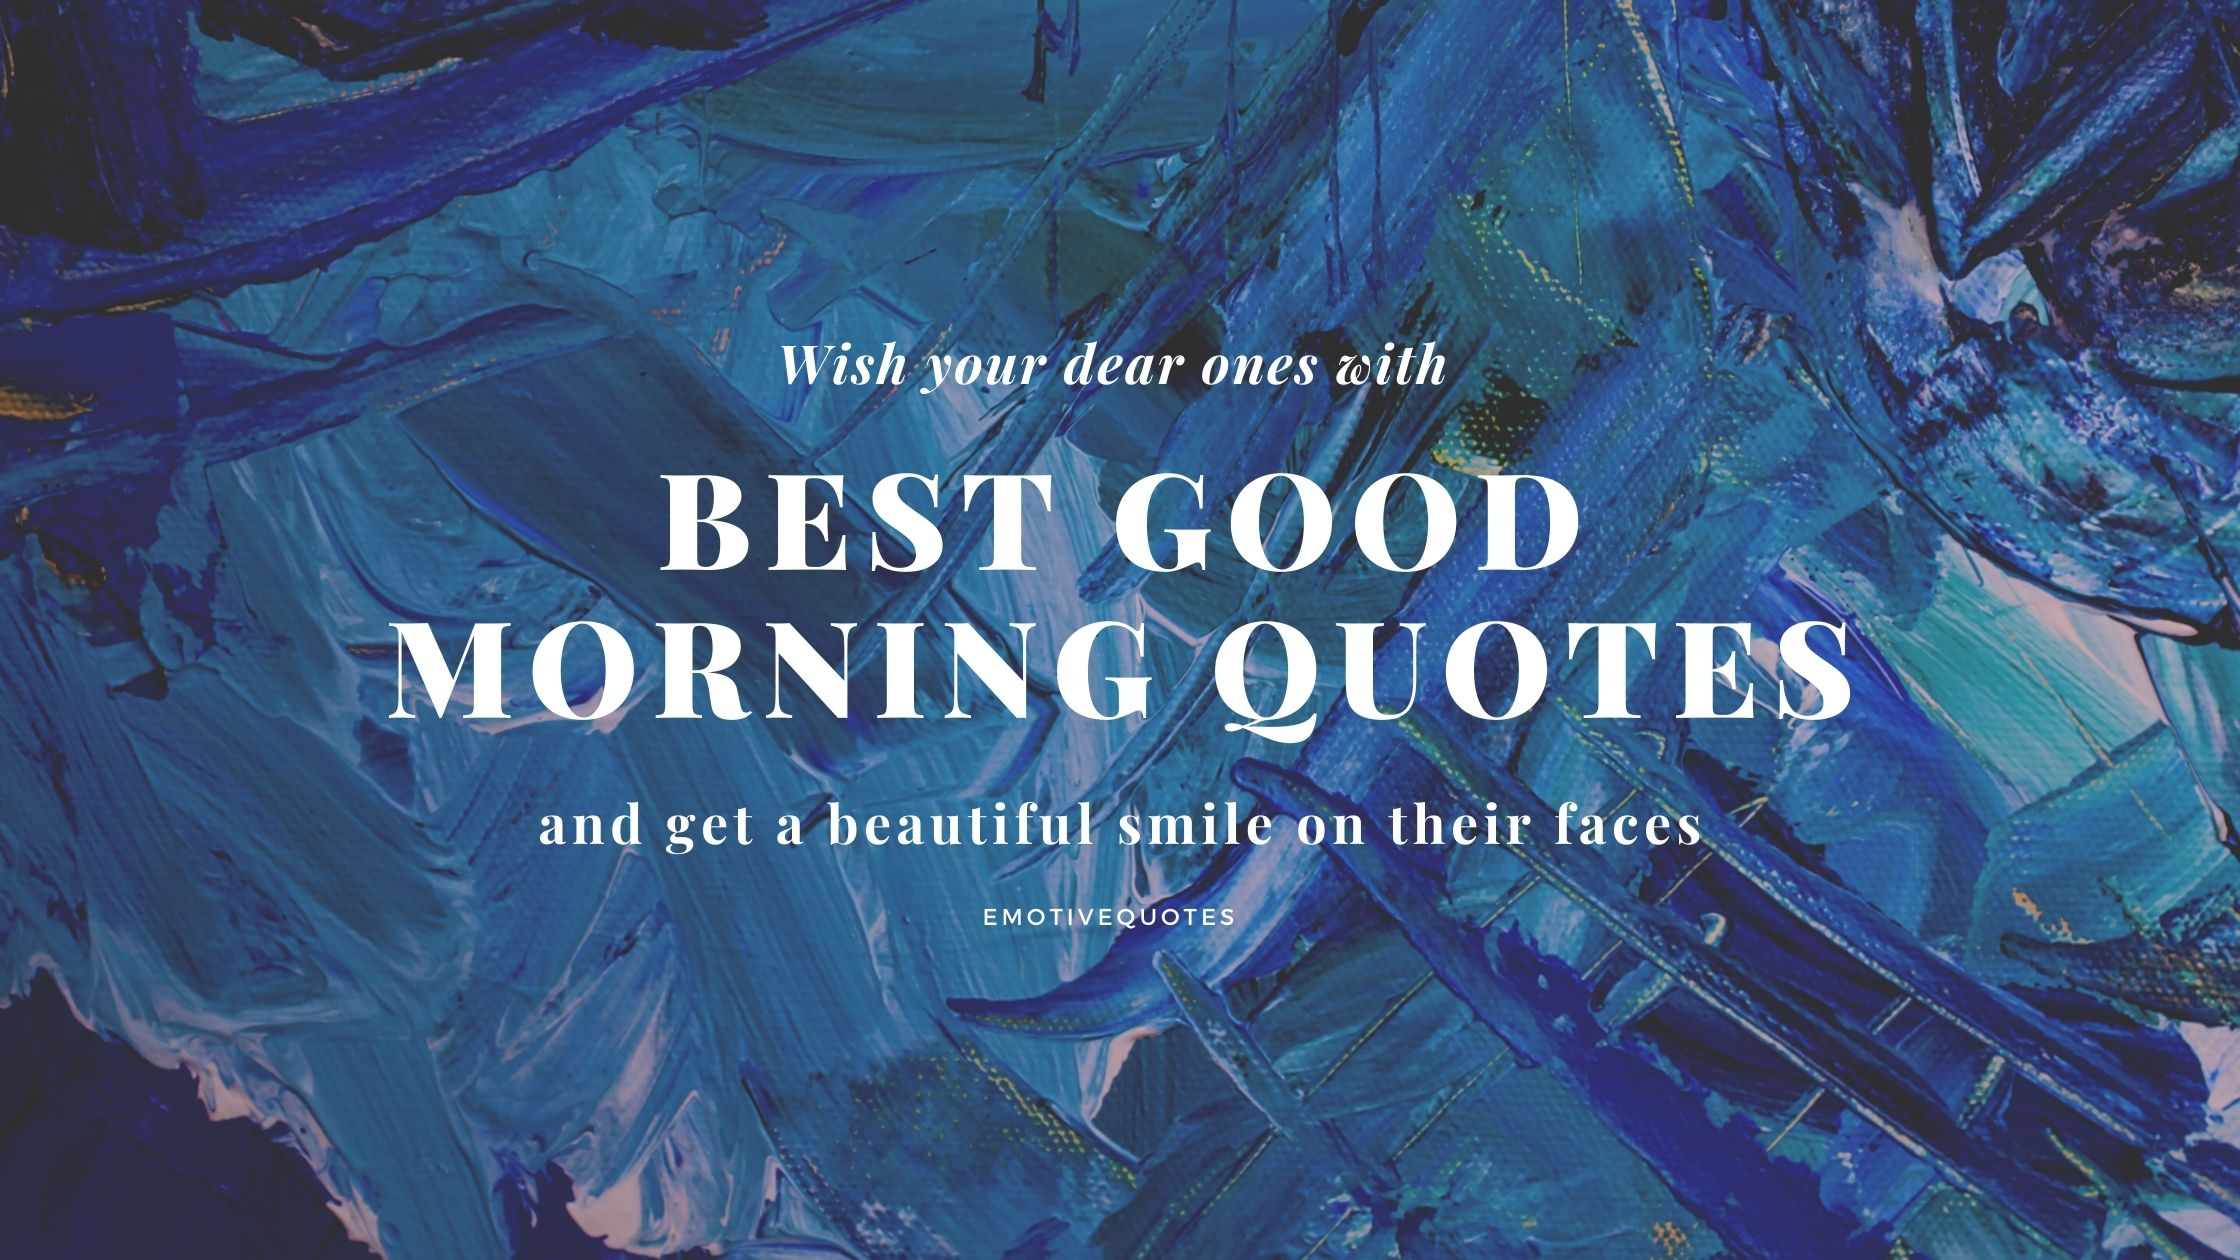 Emotive-quotes-good-morning-quotes